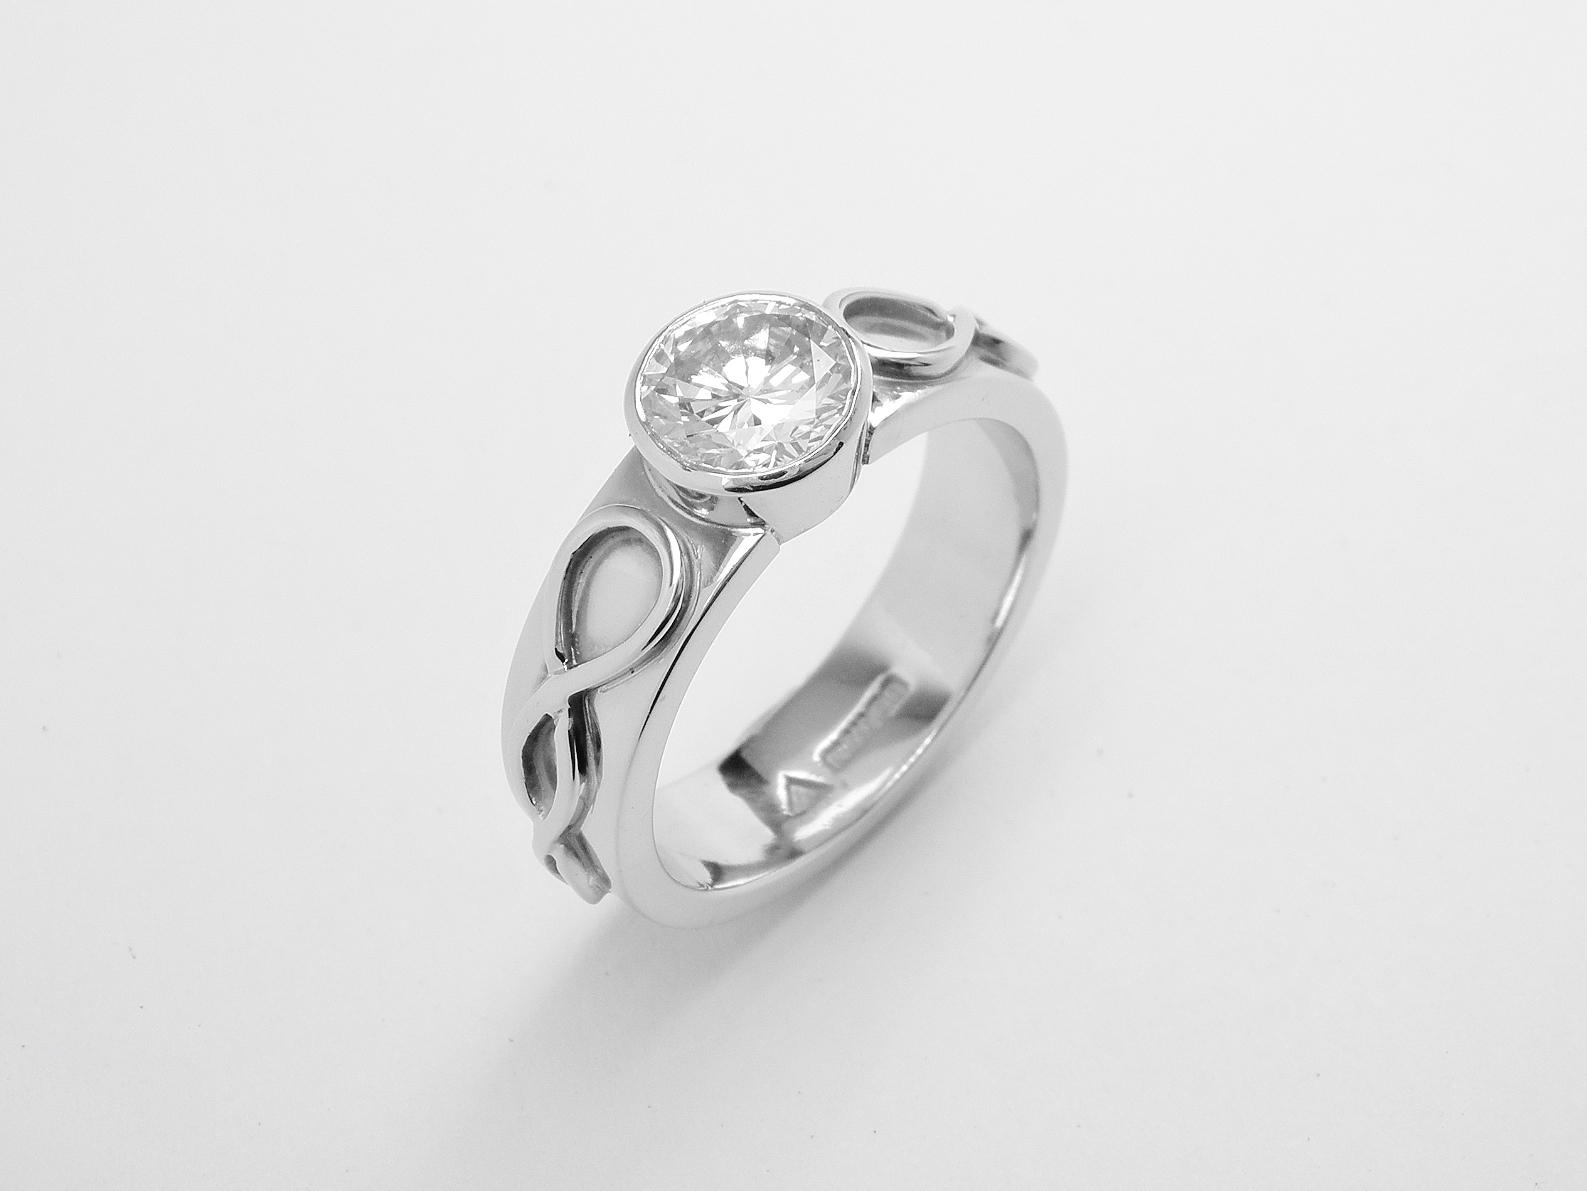 Single rub-over set round brilliant cut diamond ring mounted in platinum with Celtic motif overlay on shoulders.